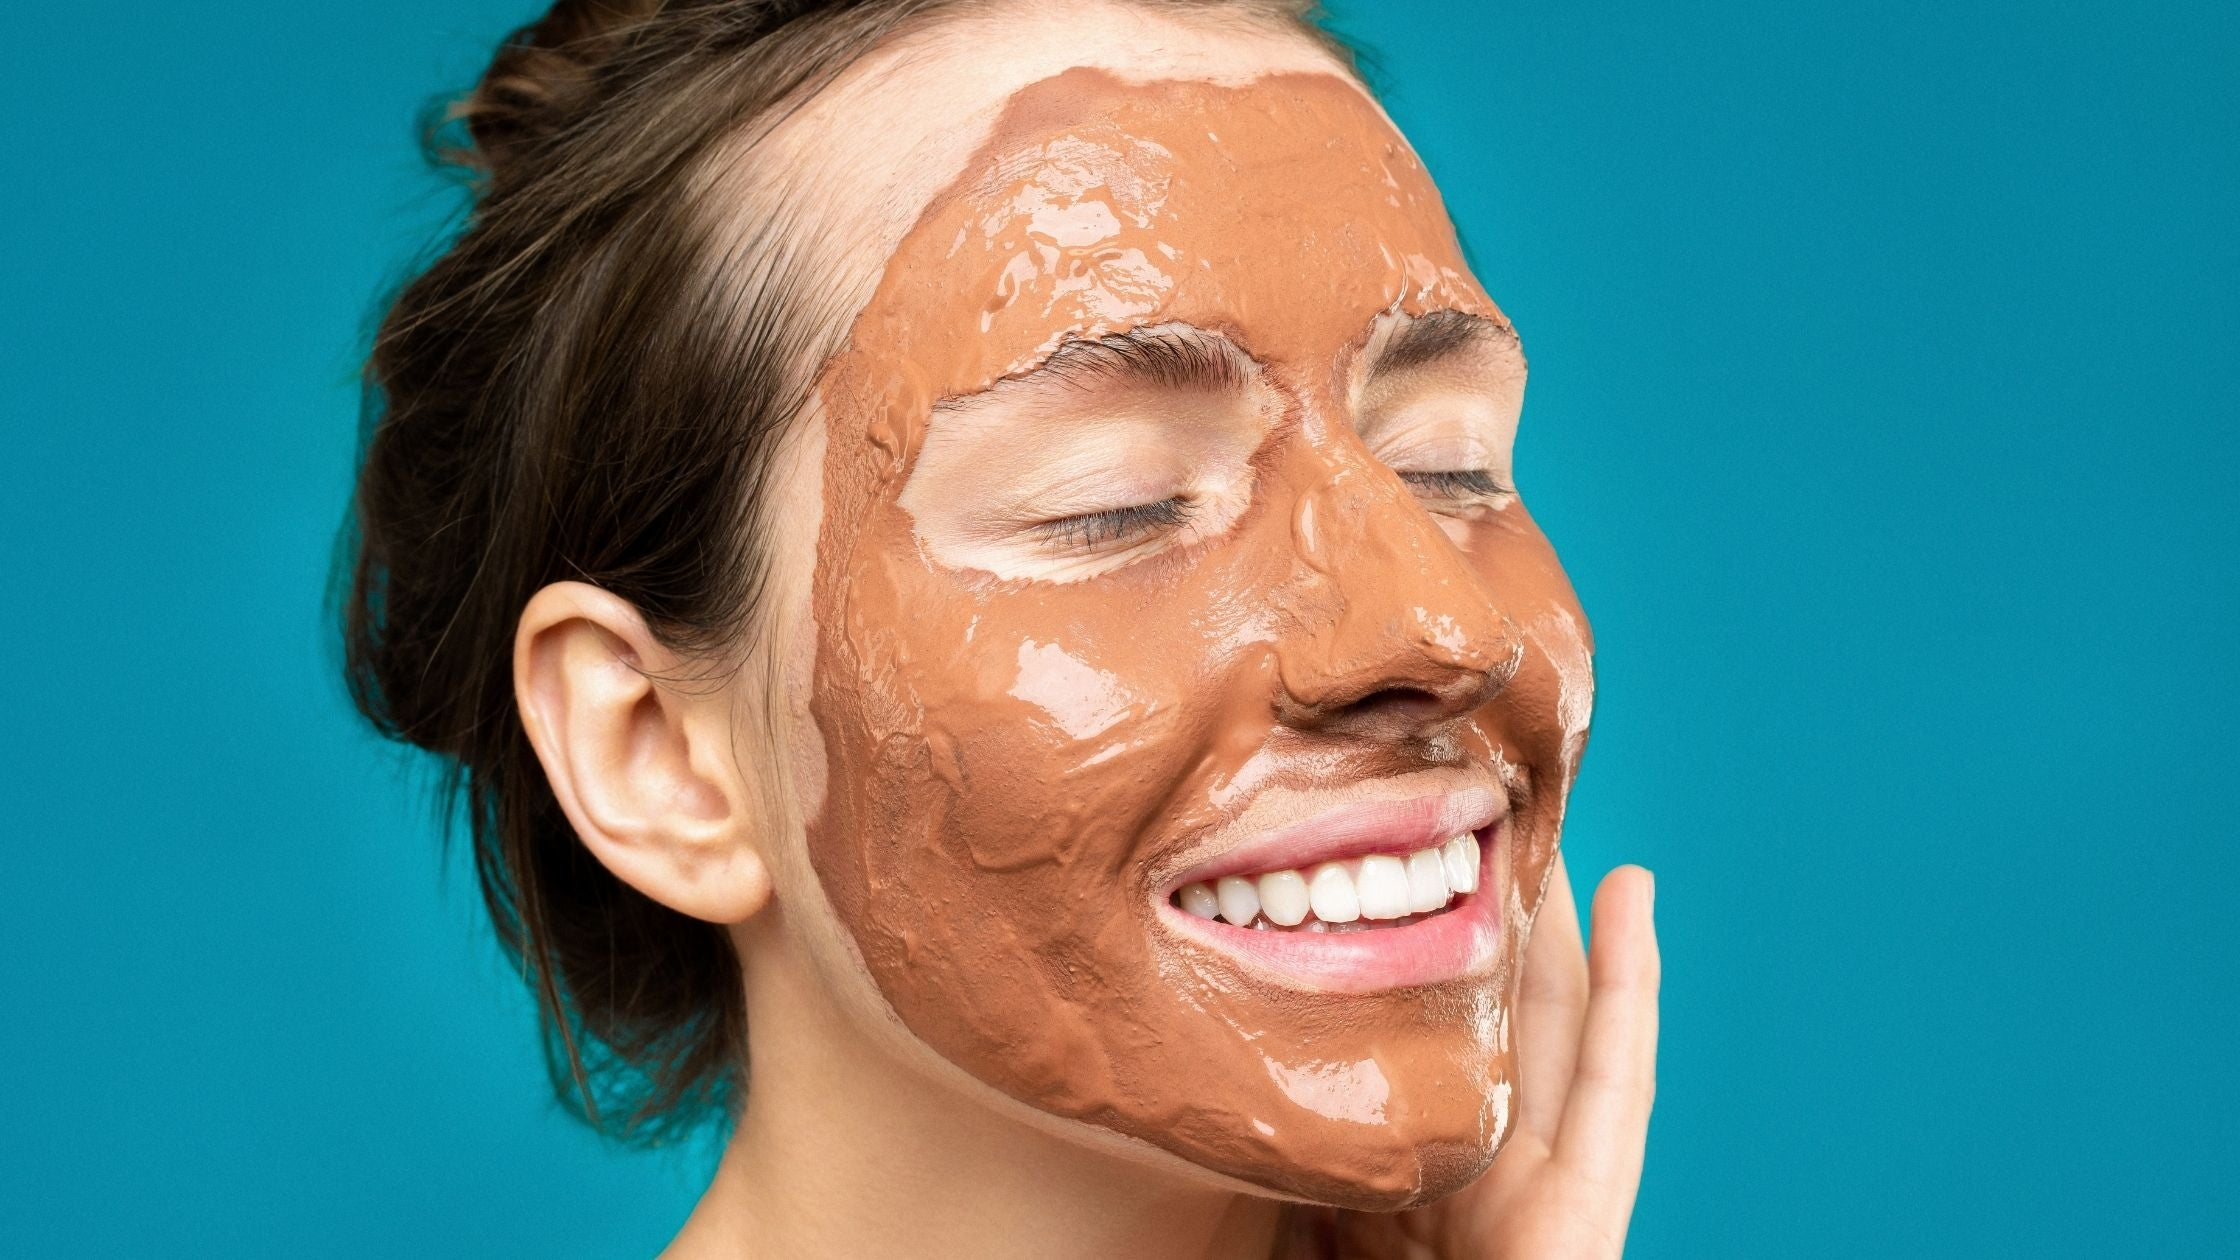 What Are The Benefits Of Fuller's Mud?